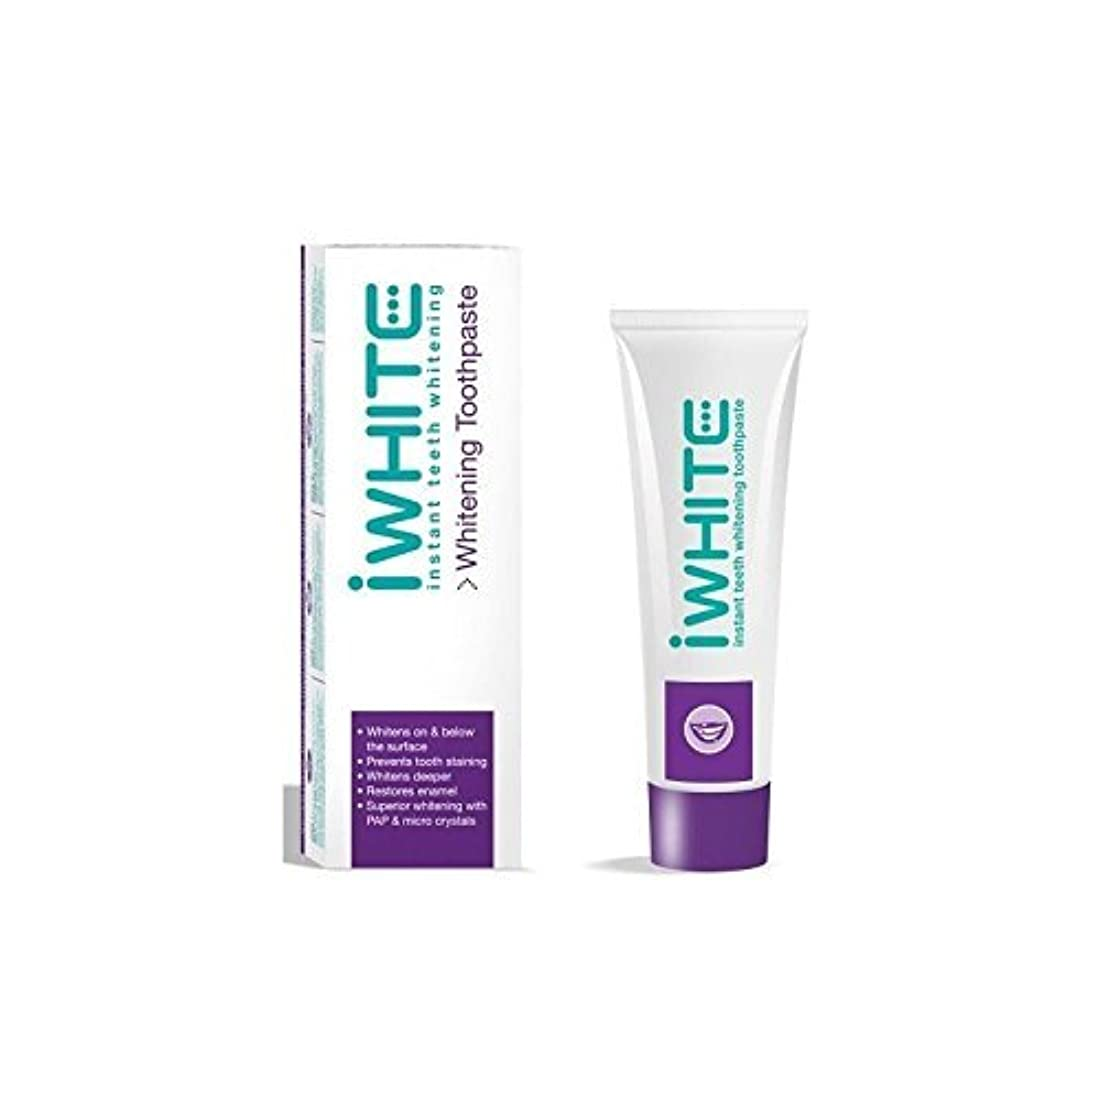 iWhite Instant Teeth Whitening Toothpaste (75ml) by iWhite